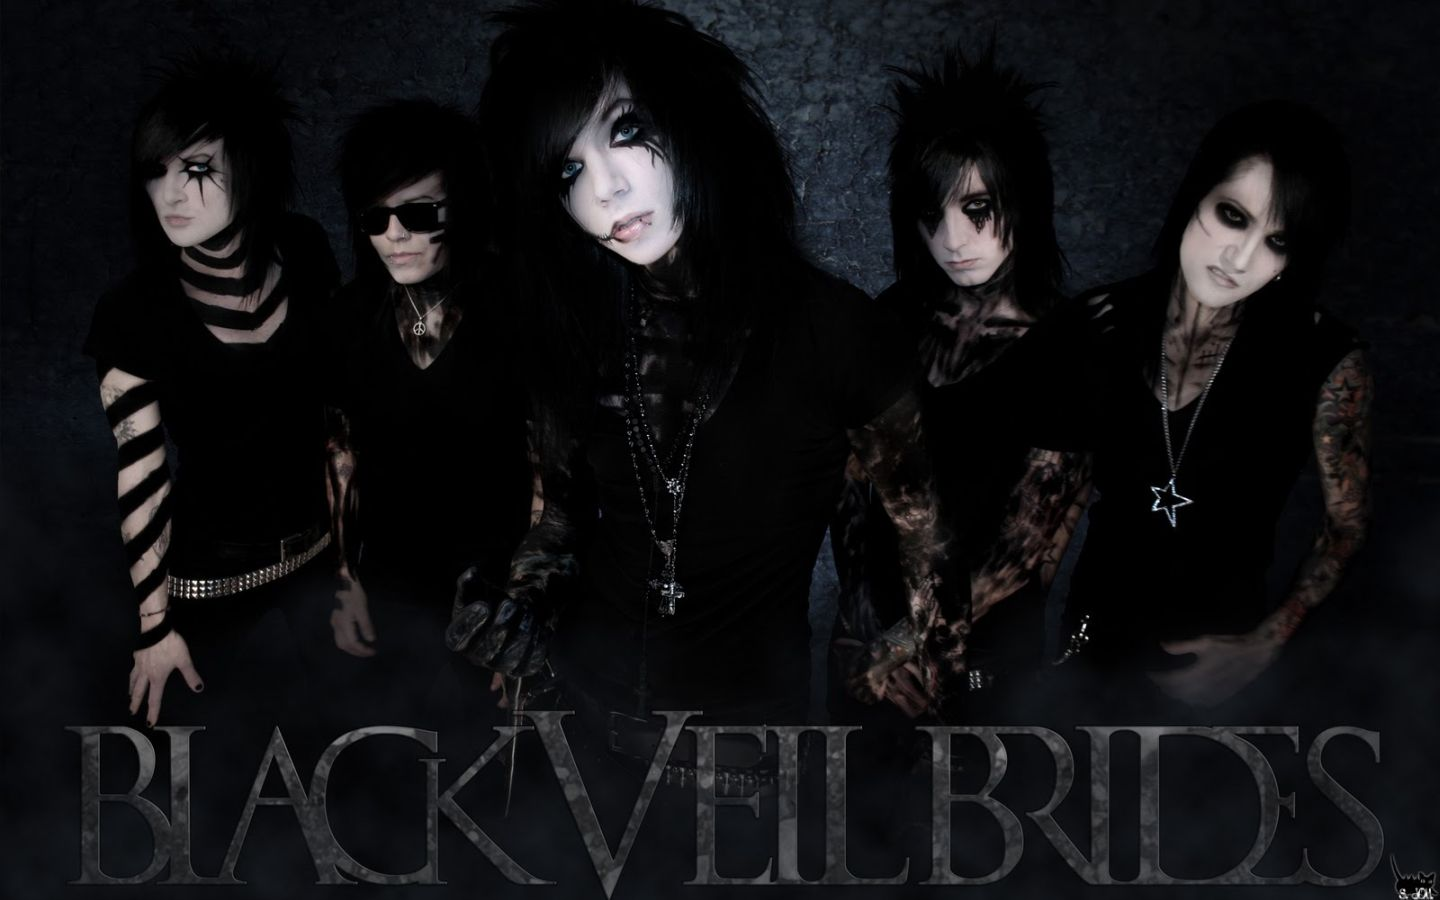 Black Veil Brides Hd Wallpaper Peinture 1440x900